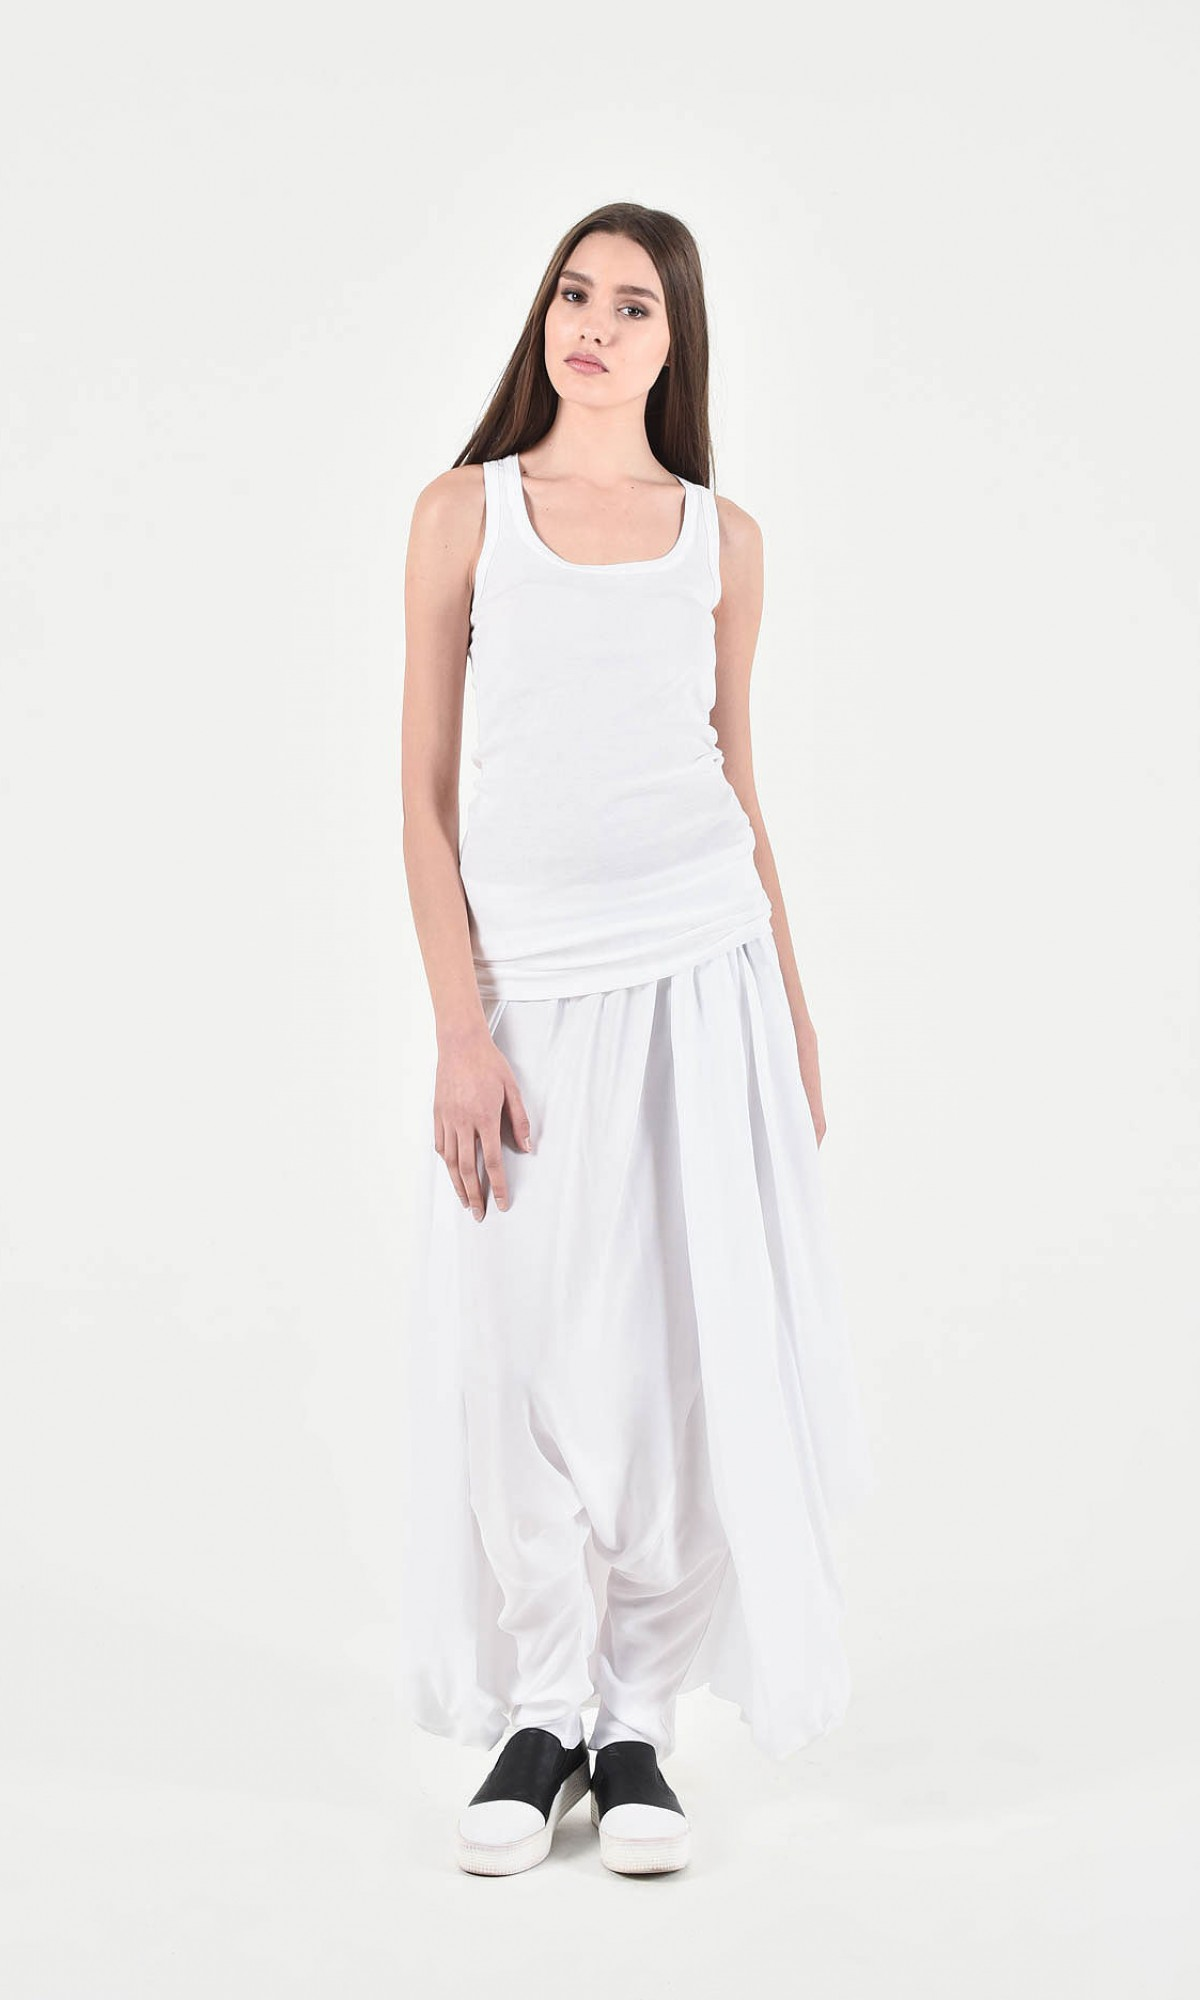 Elegant Wide Skirt - Pants A90248